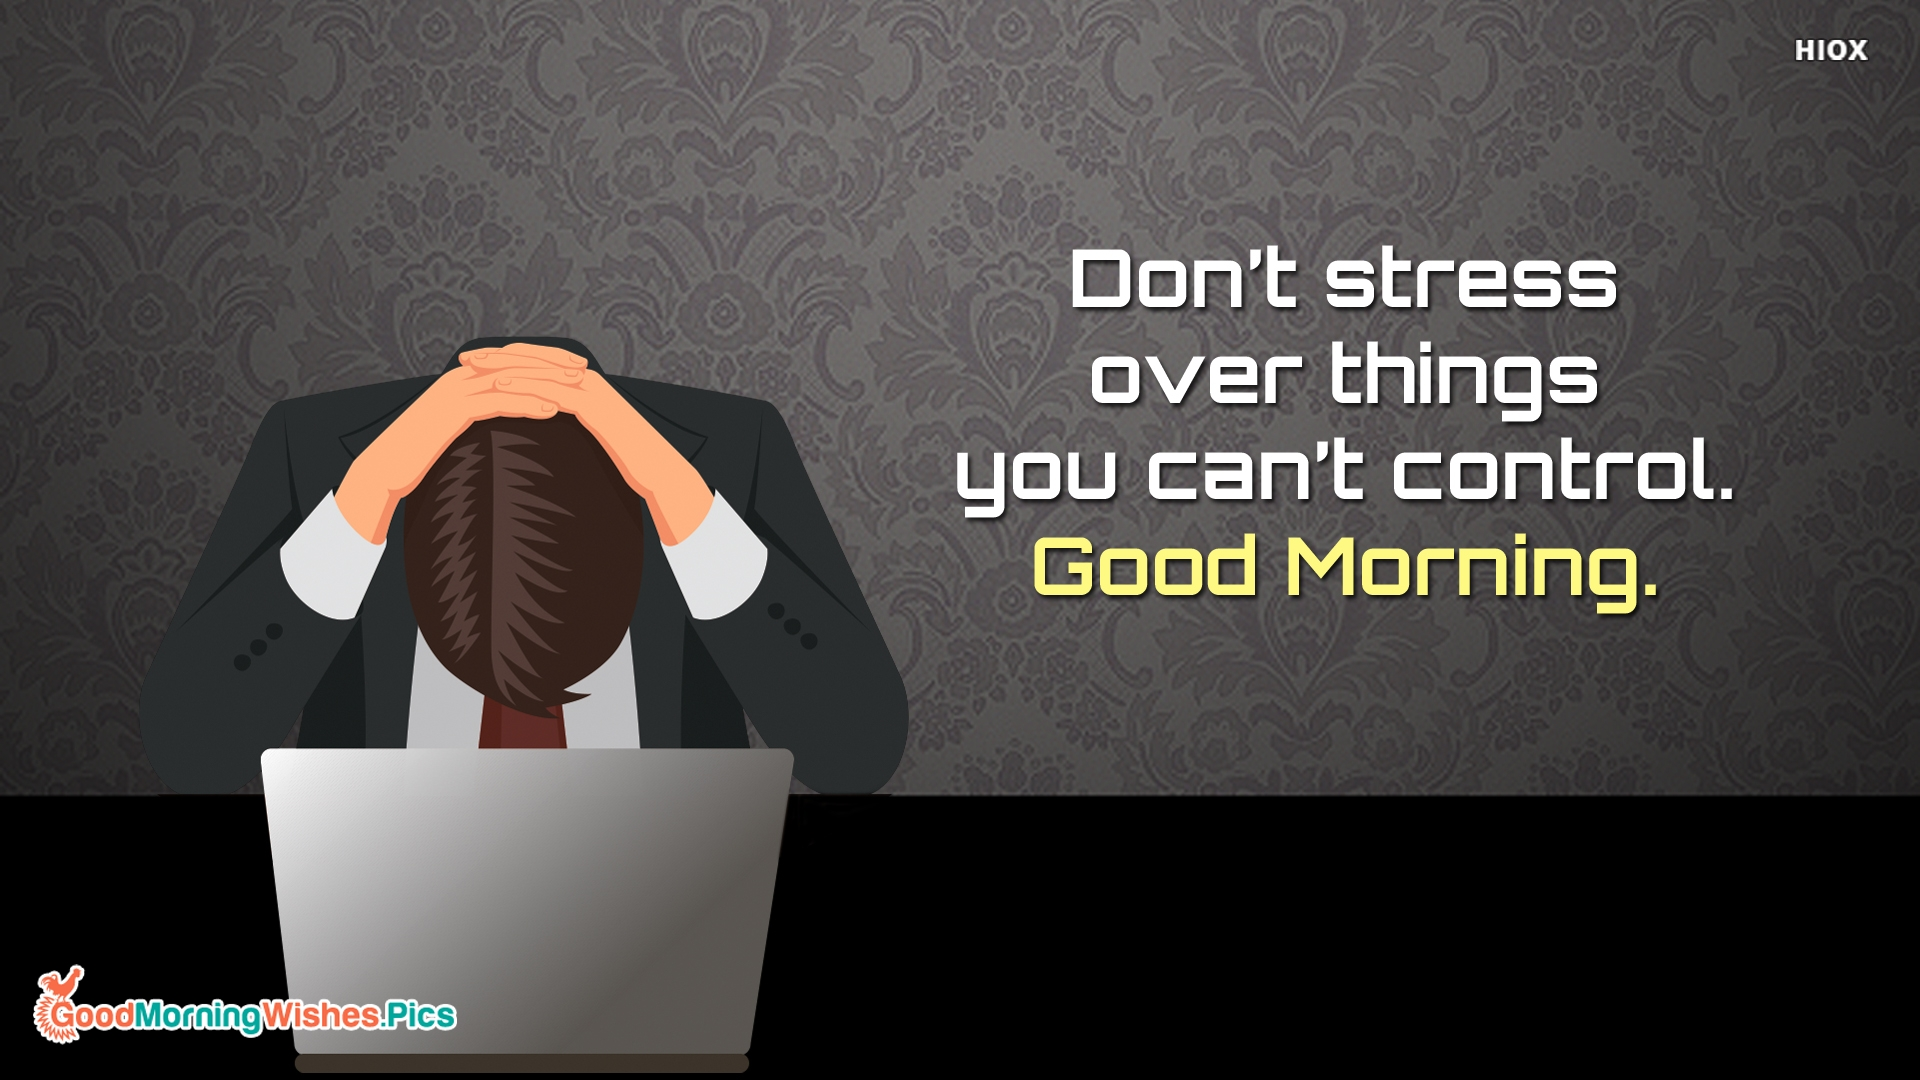 Don't Stress Over Things You Can't Control. Good Morning.